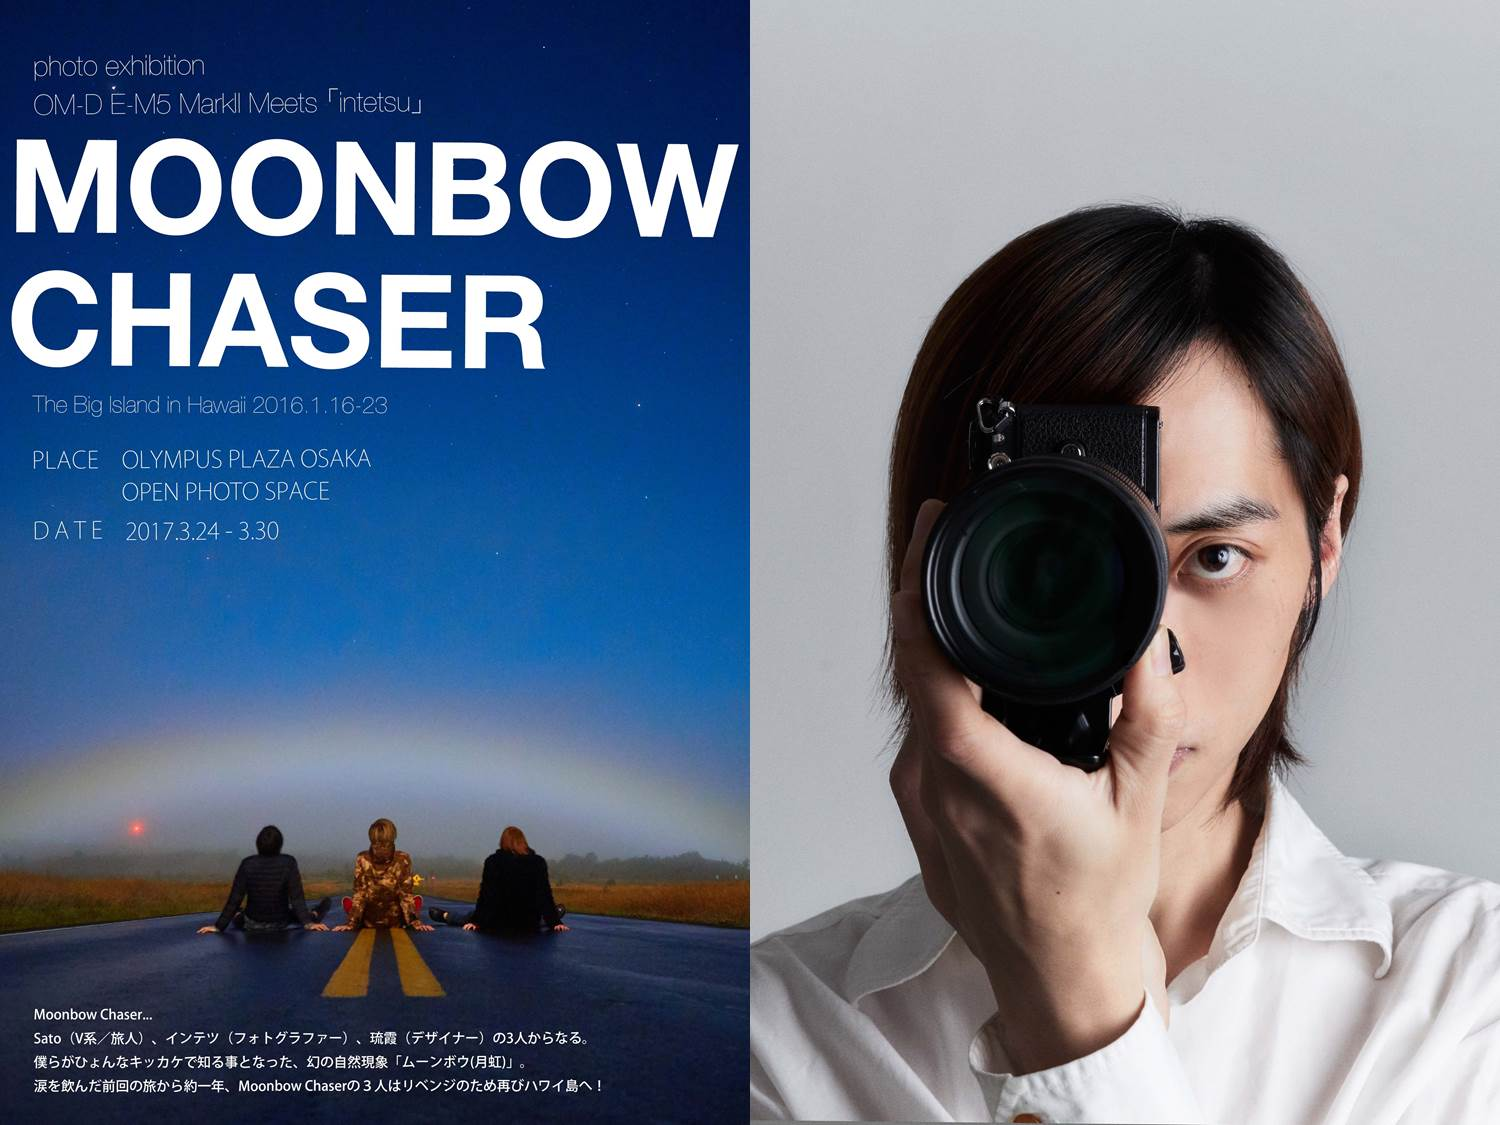 3/24(金)インテツ写真展「MOONBOW CHASER  The Big Island in Hawaii 2016.1.16-1.23」